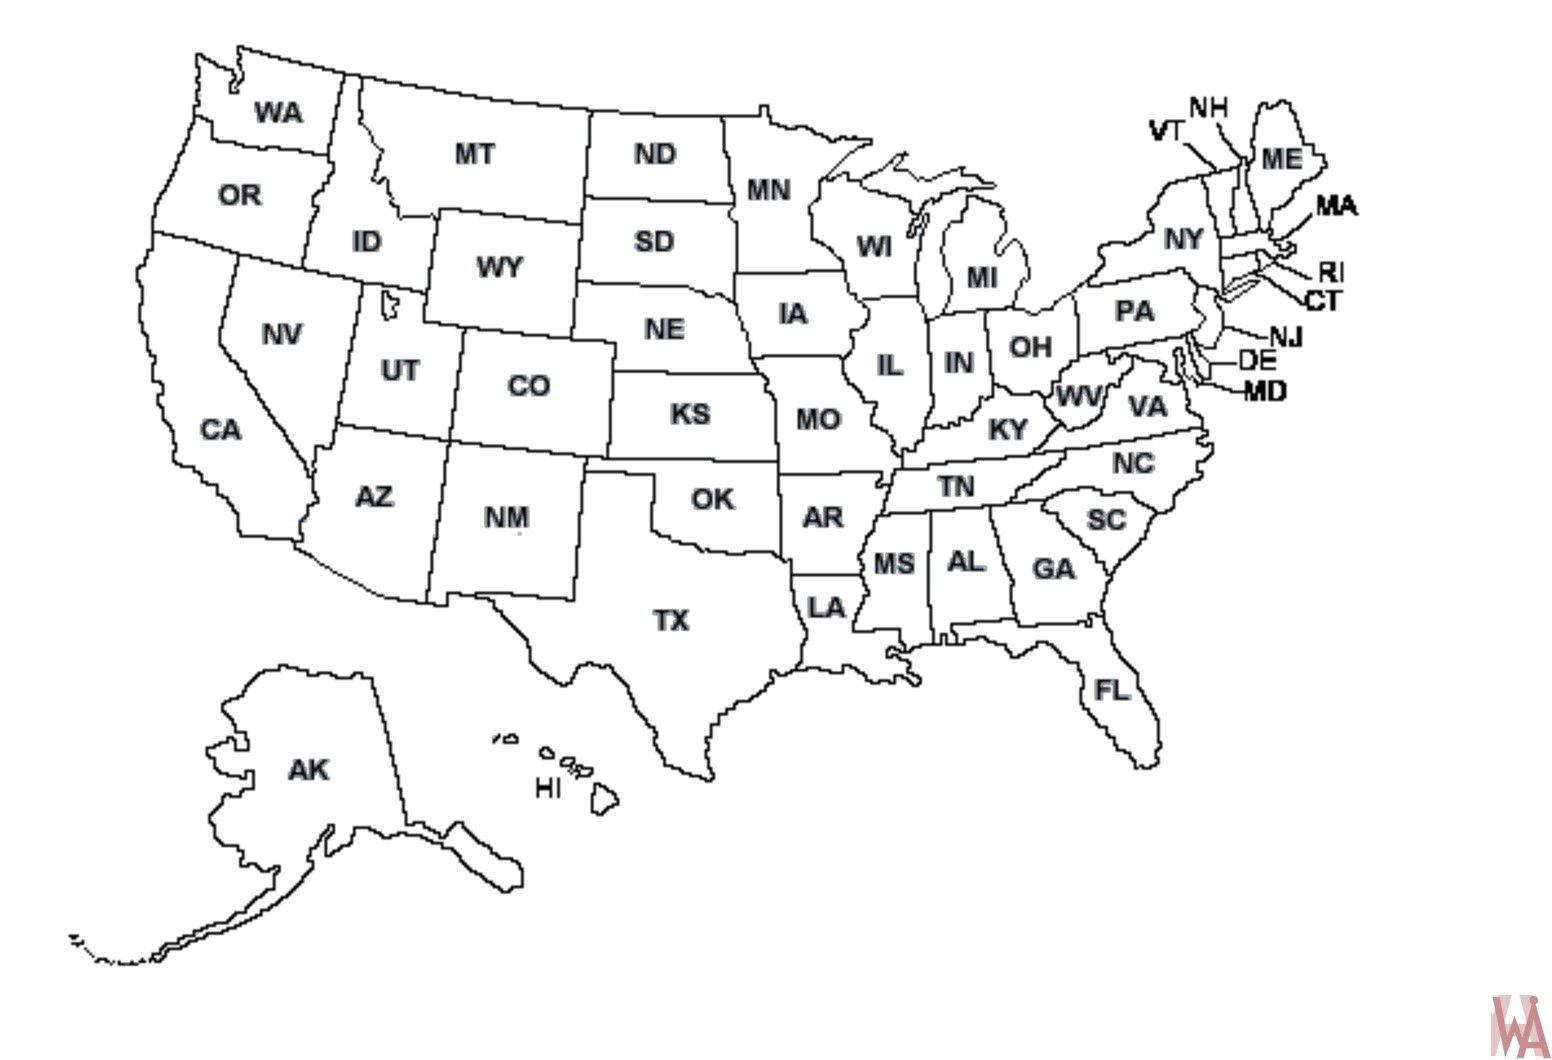 outline map united states america Blank Outline Map of The United States | WhatsAnswer